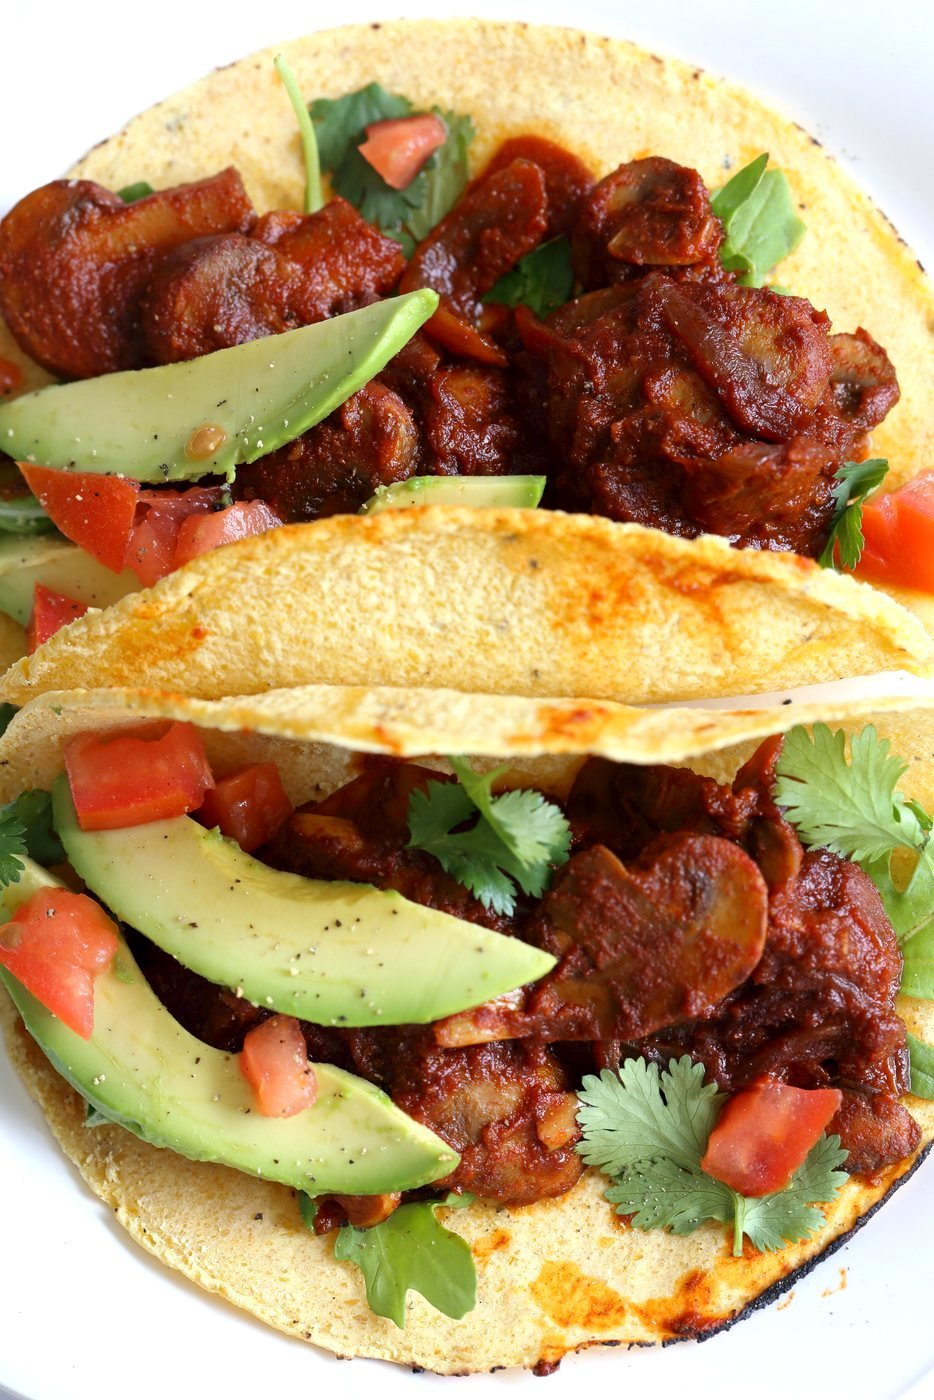 Vegan Barbacoa Mushroom Tacos . These saucy Barbacoa Tacos are super easy and versatile. Use the from scratch chile sauce with beans, lentils or other shredded vegetables for variation. #Vegan Barbacoa Recipe. #Glutenfree #Nutfree #soyfree #Recipe #veganricha | Vegan Richa